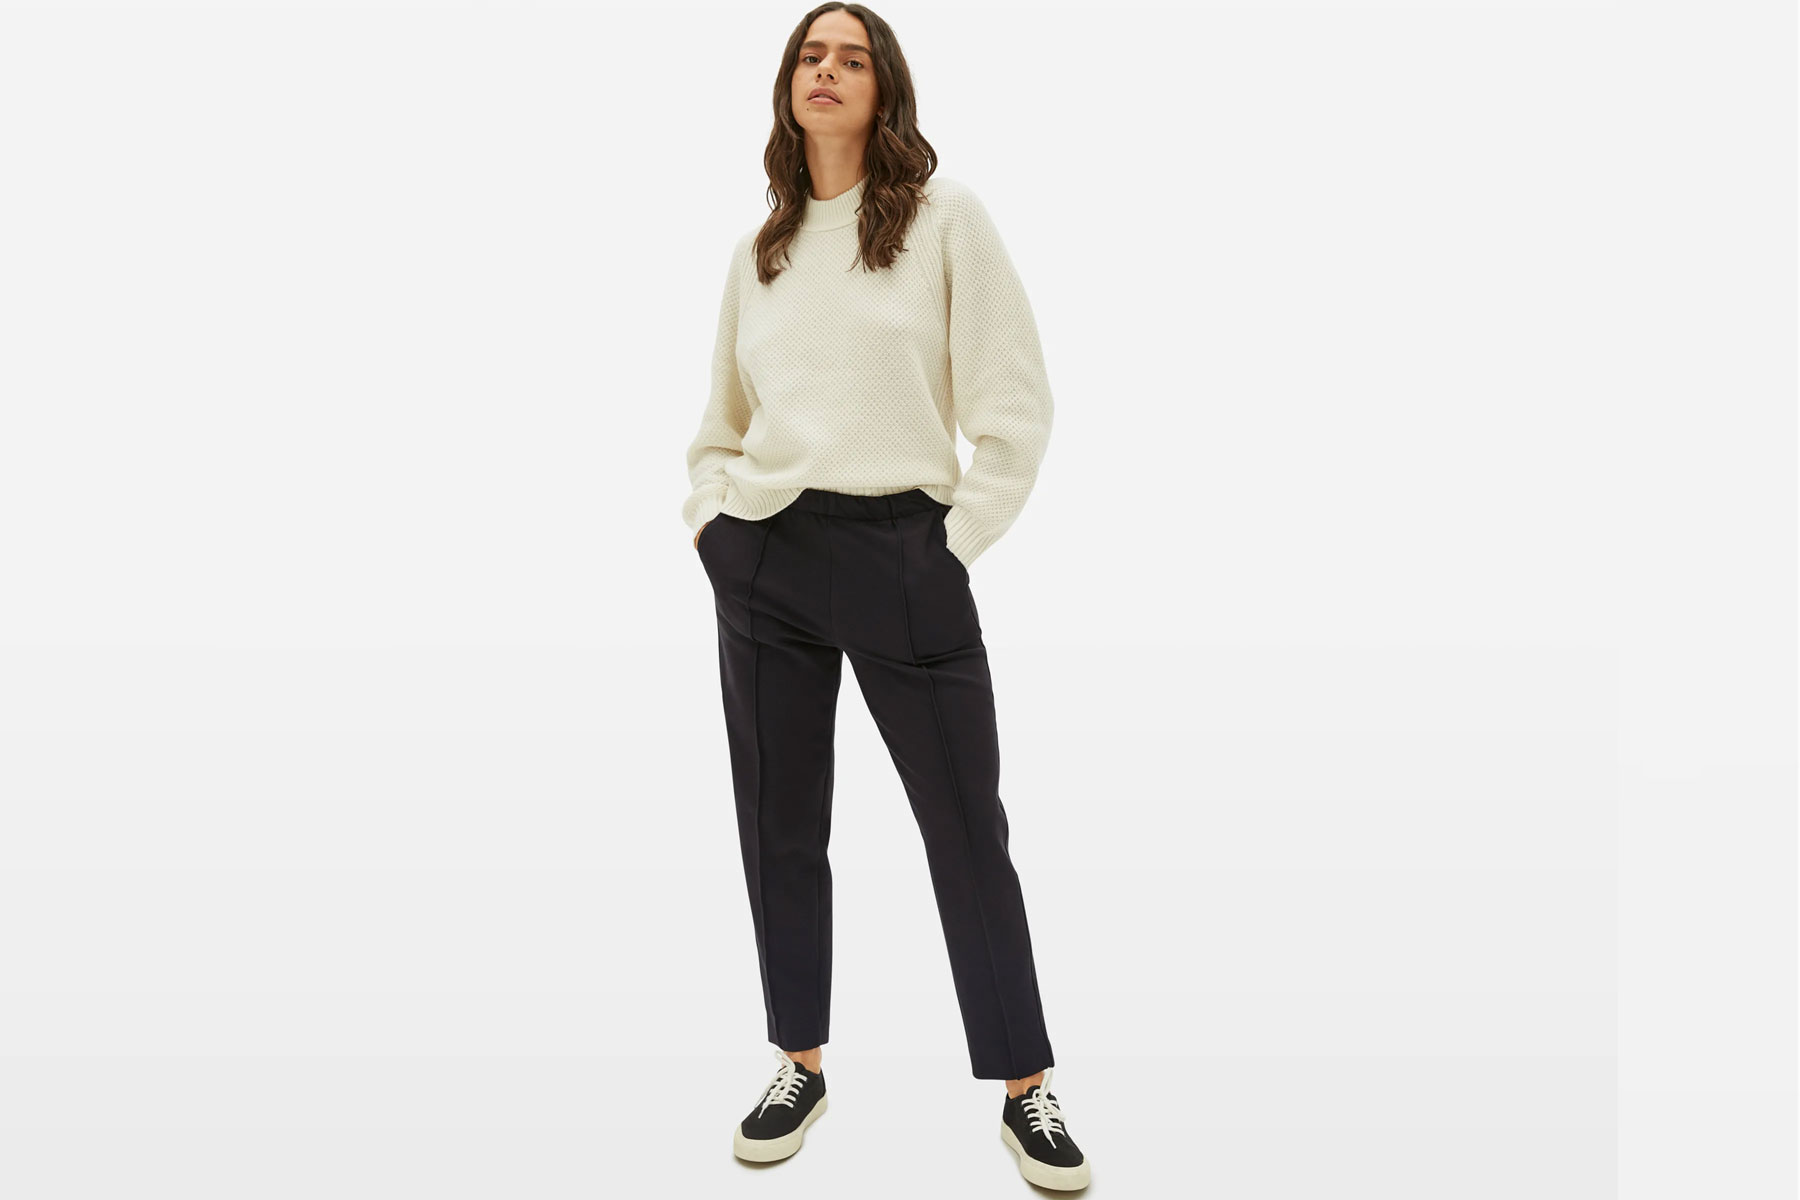 Woman wearing white sweater and black pants